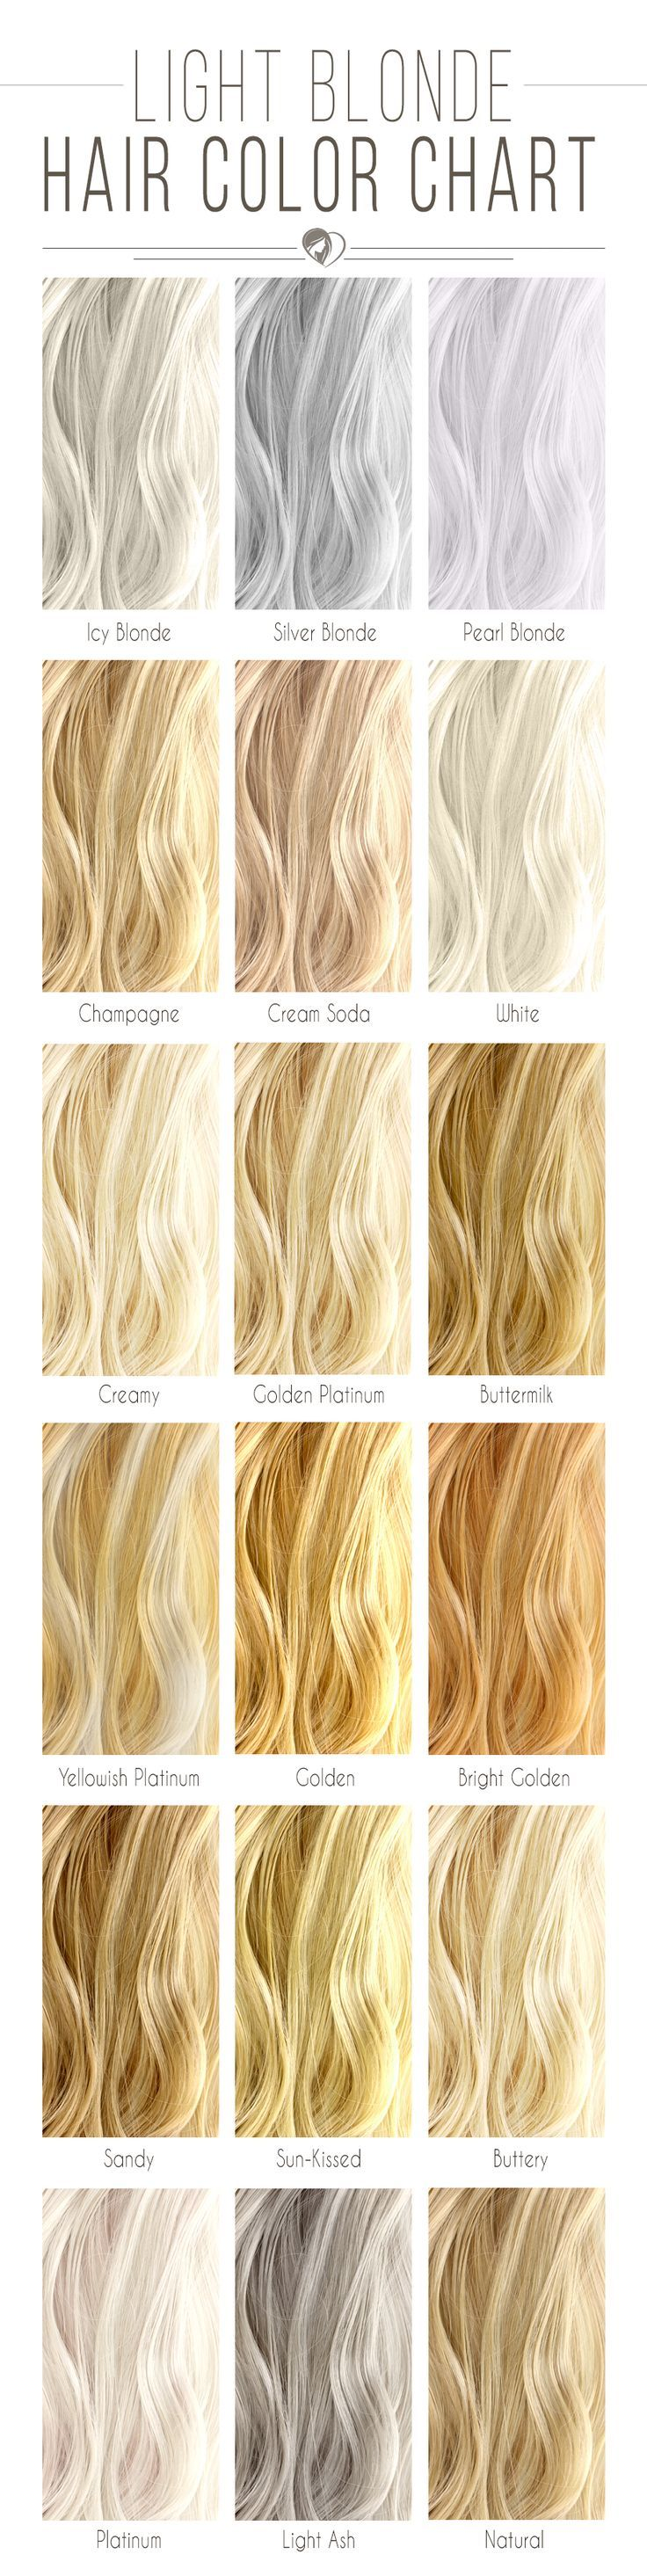 Hair Color 2017 2018 Light Blonde Hair Color Chart Blondehair